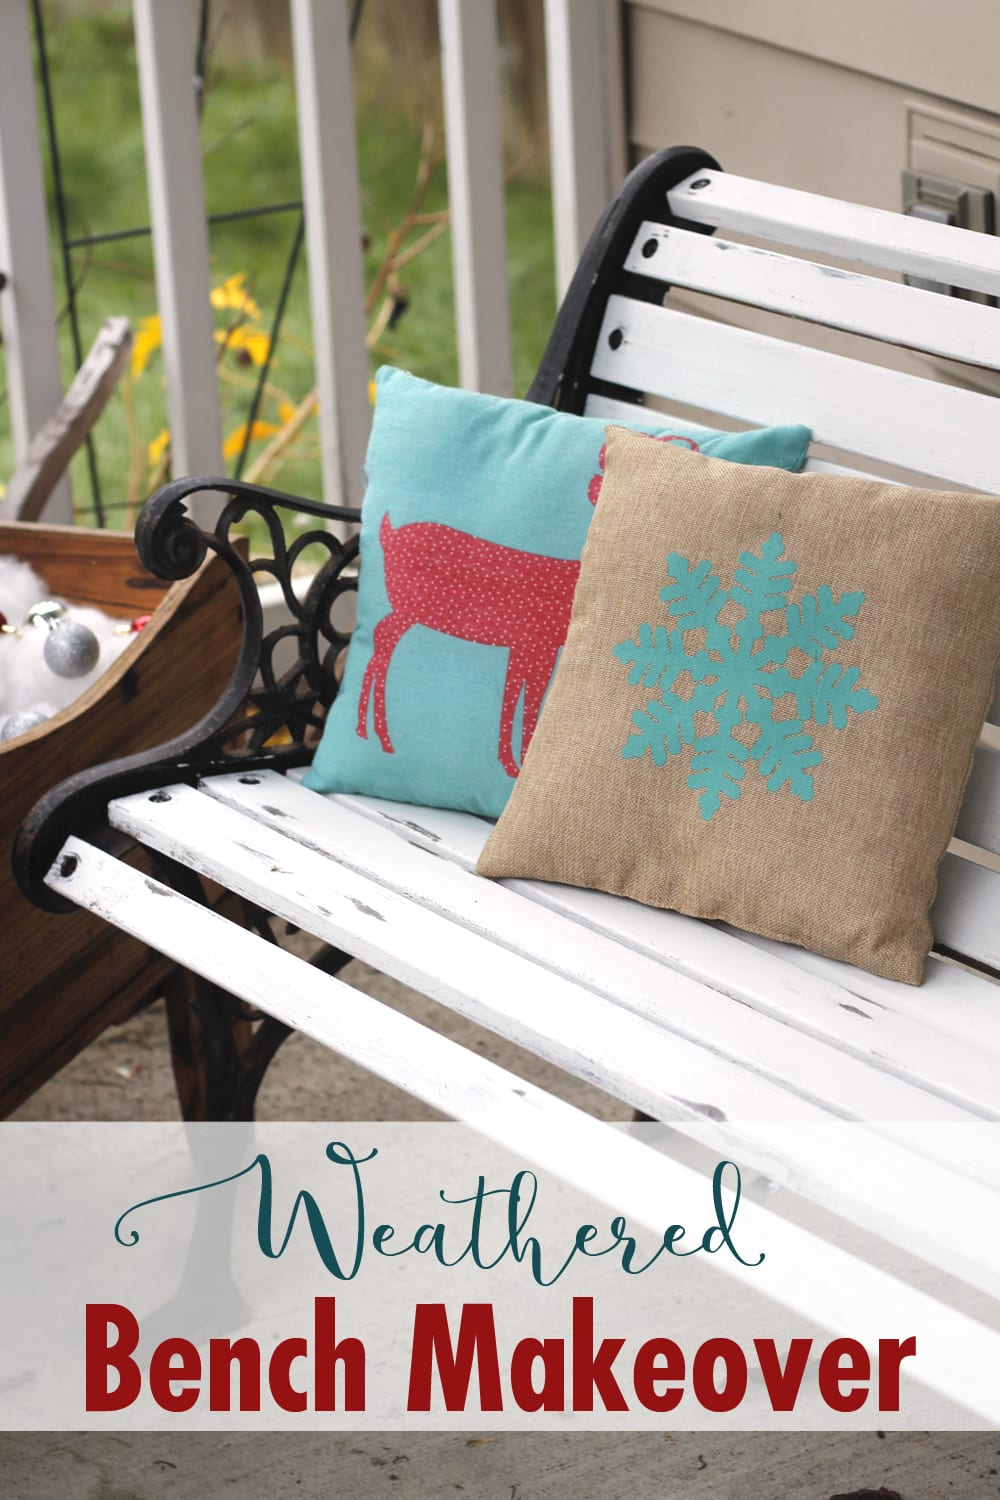 Learn this simple trick to make perfectly weathered furniture every time! See it done on this bench makeover along with 11 other weathered furniture makeover ideas.